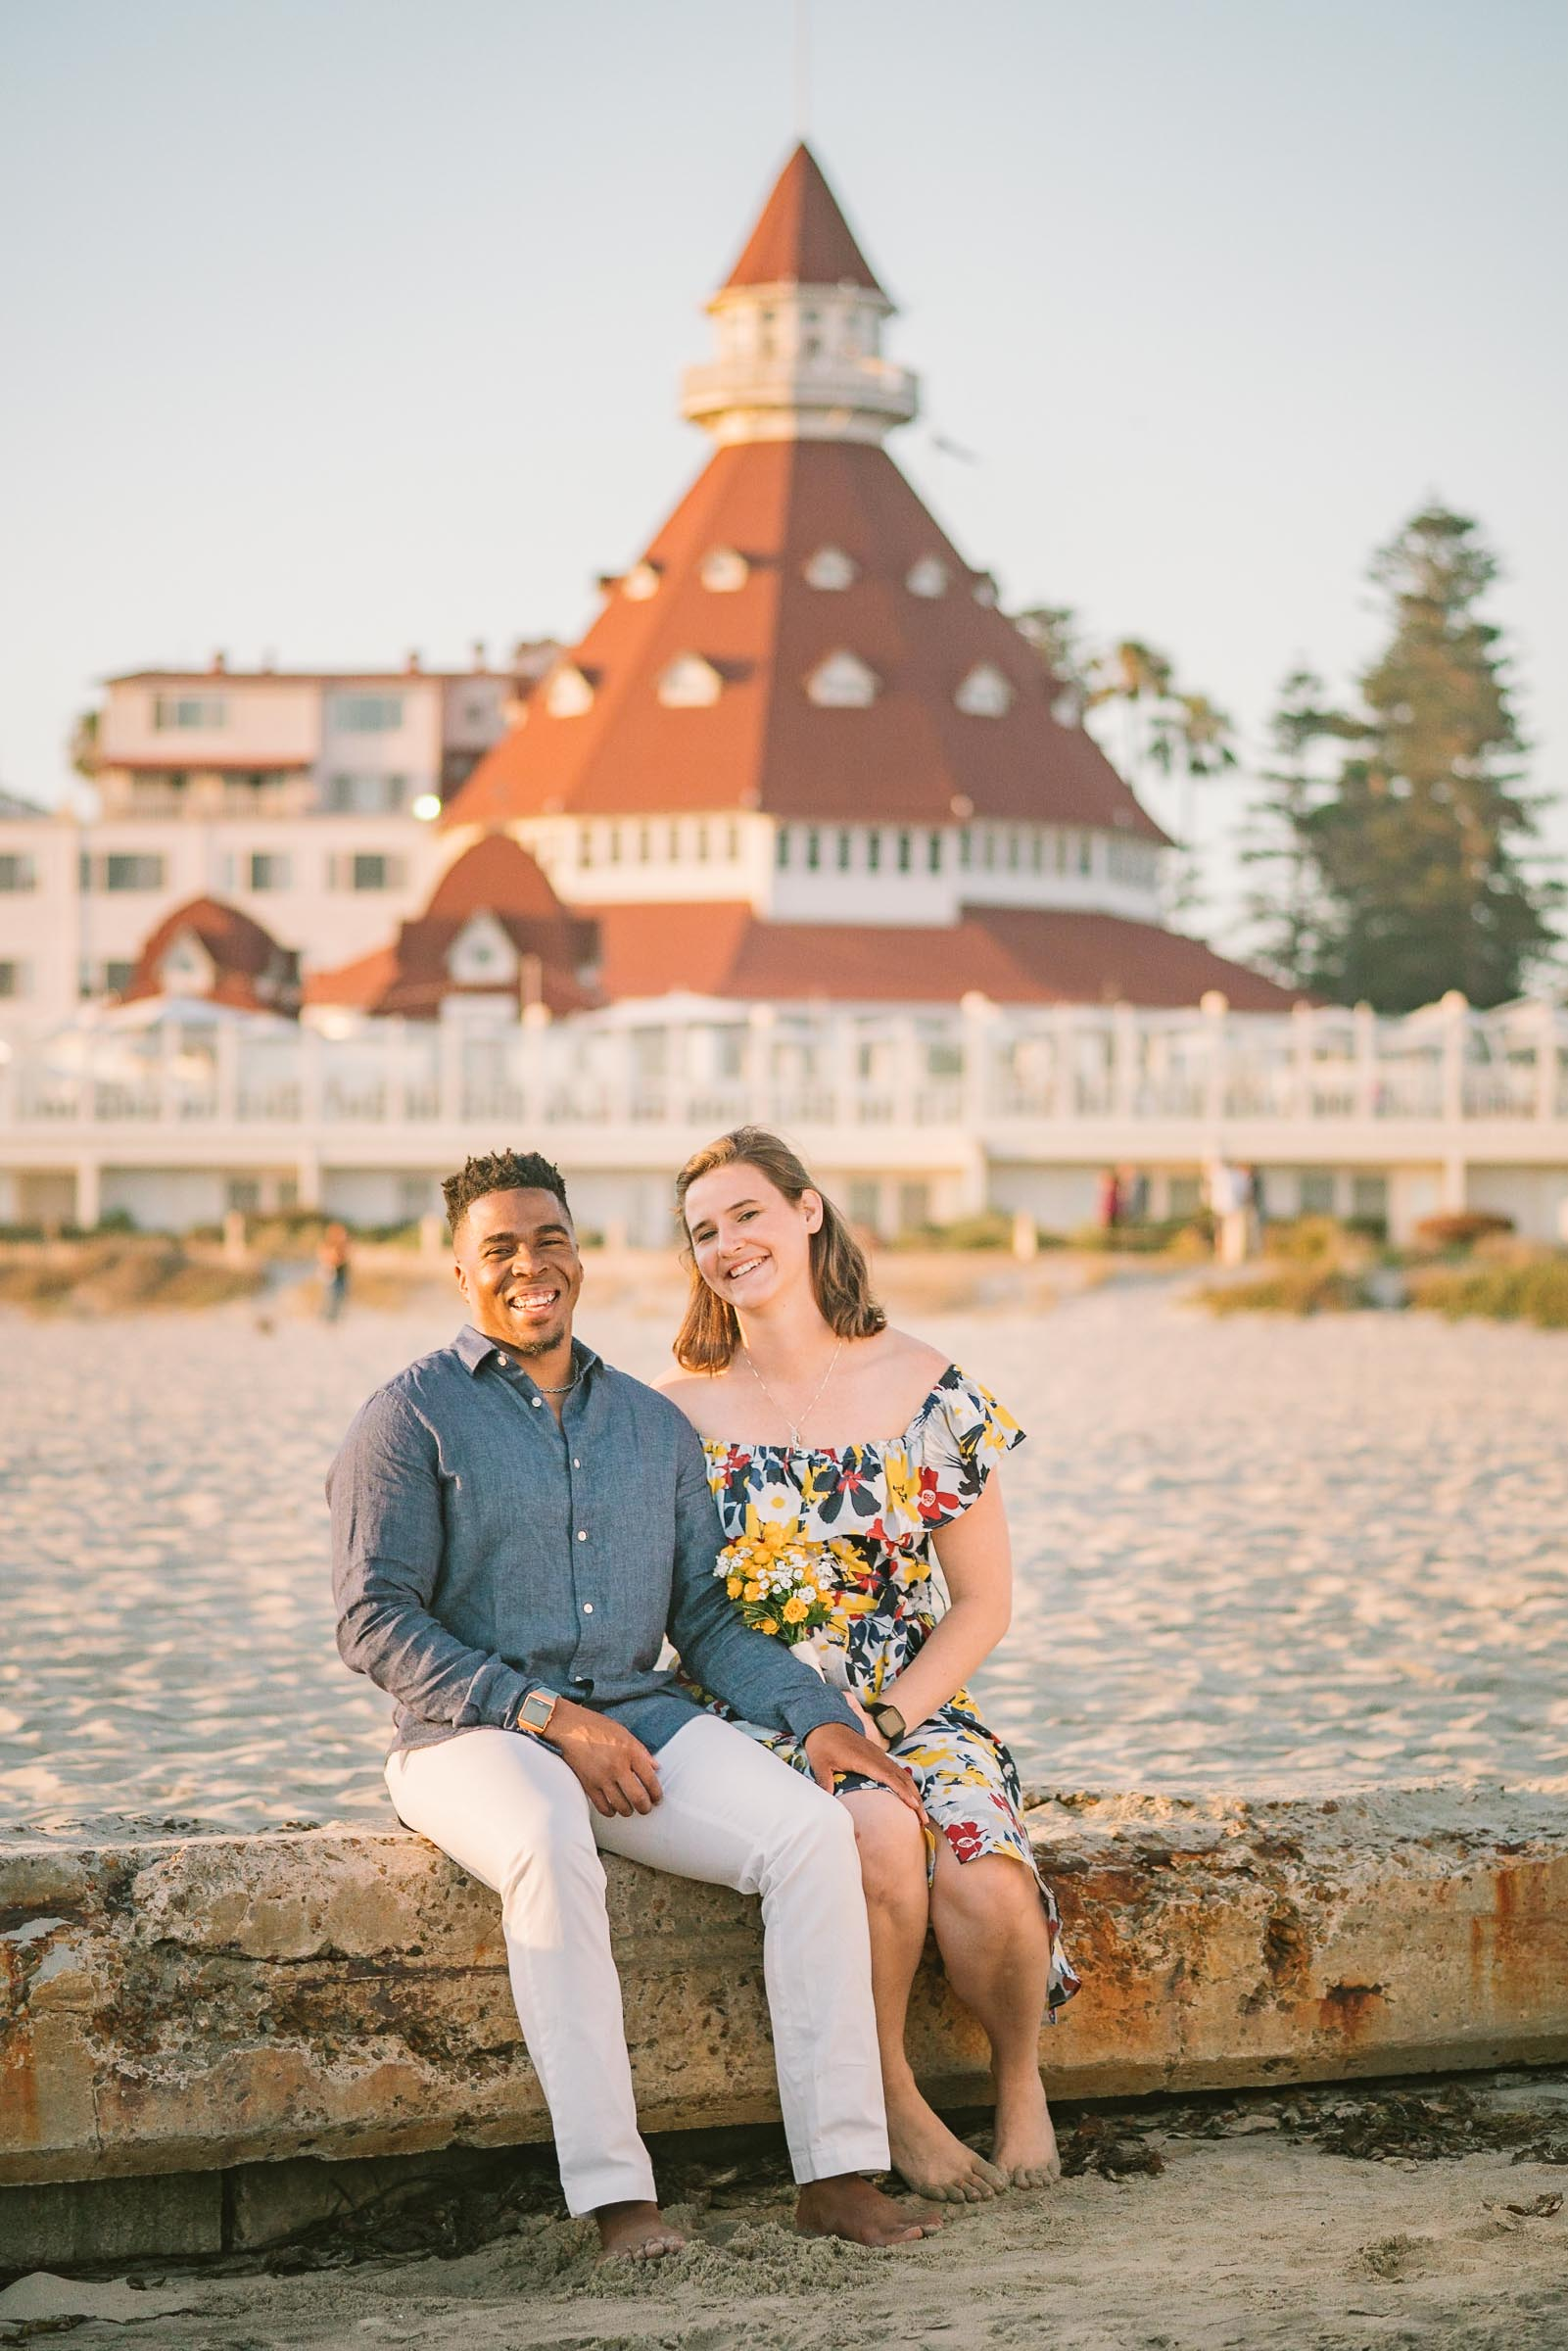 engagement session coronado island hotel sunset san diego california white girl yellow blue red dress african american interracial couple dusk